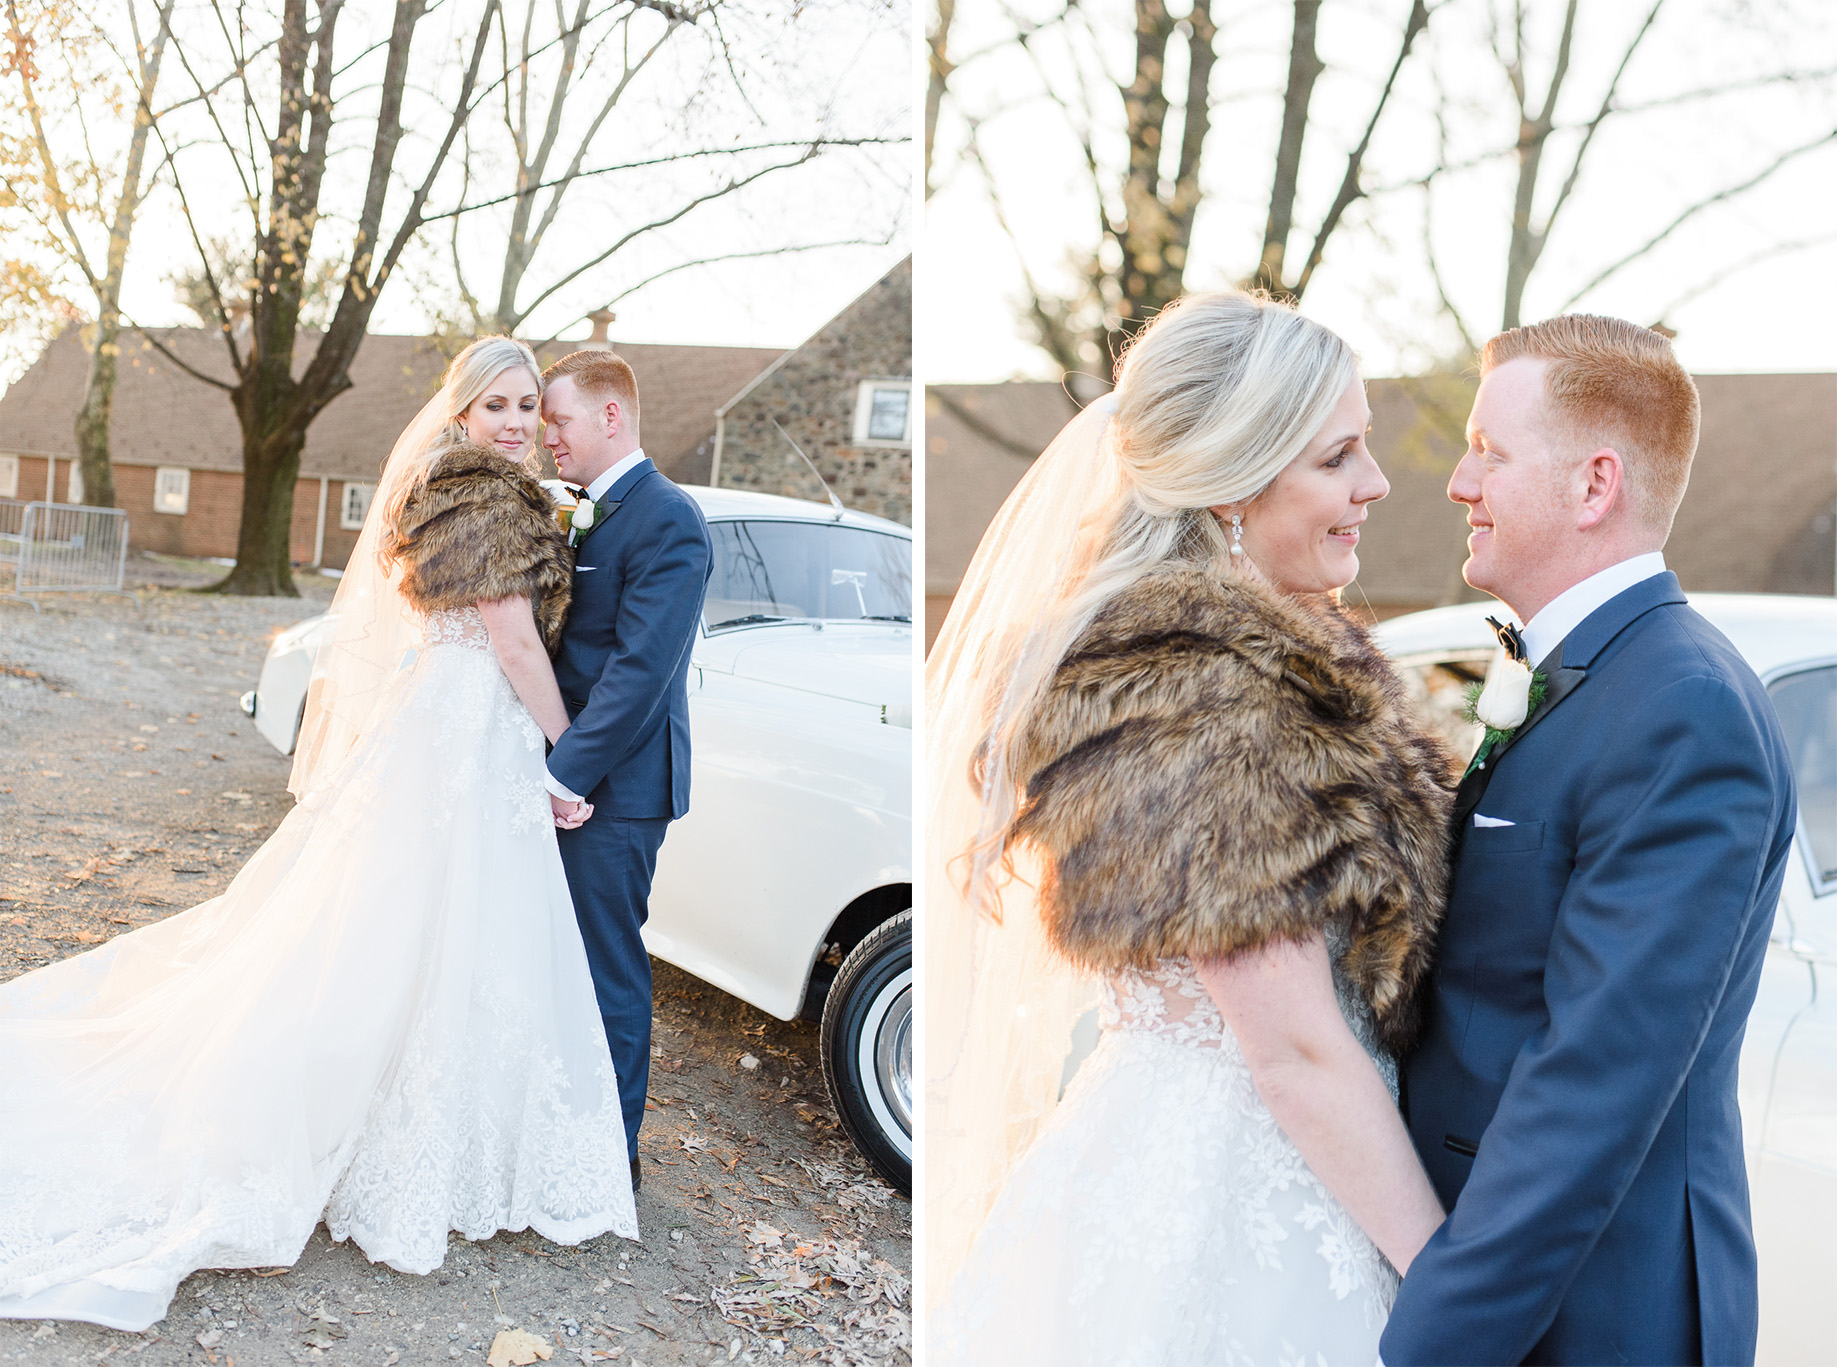 Julie_and_Ben_Wedding_Double_FOR_BLOG_NEW1.jpg